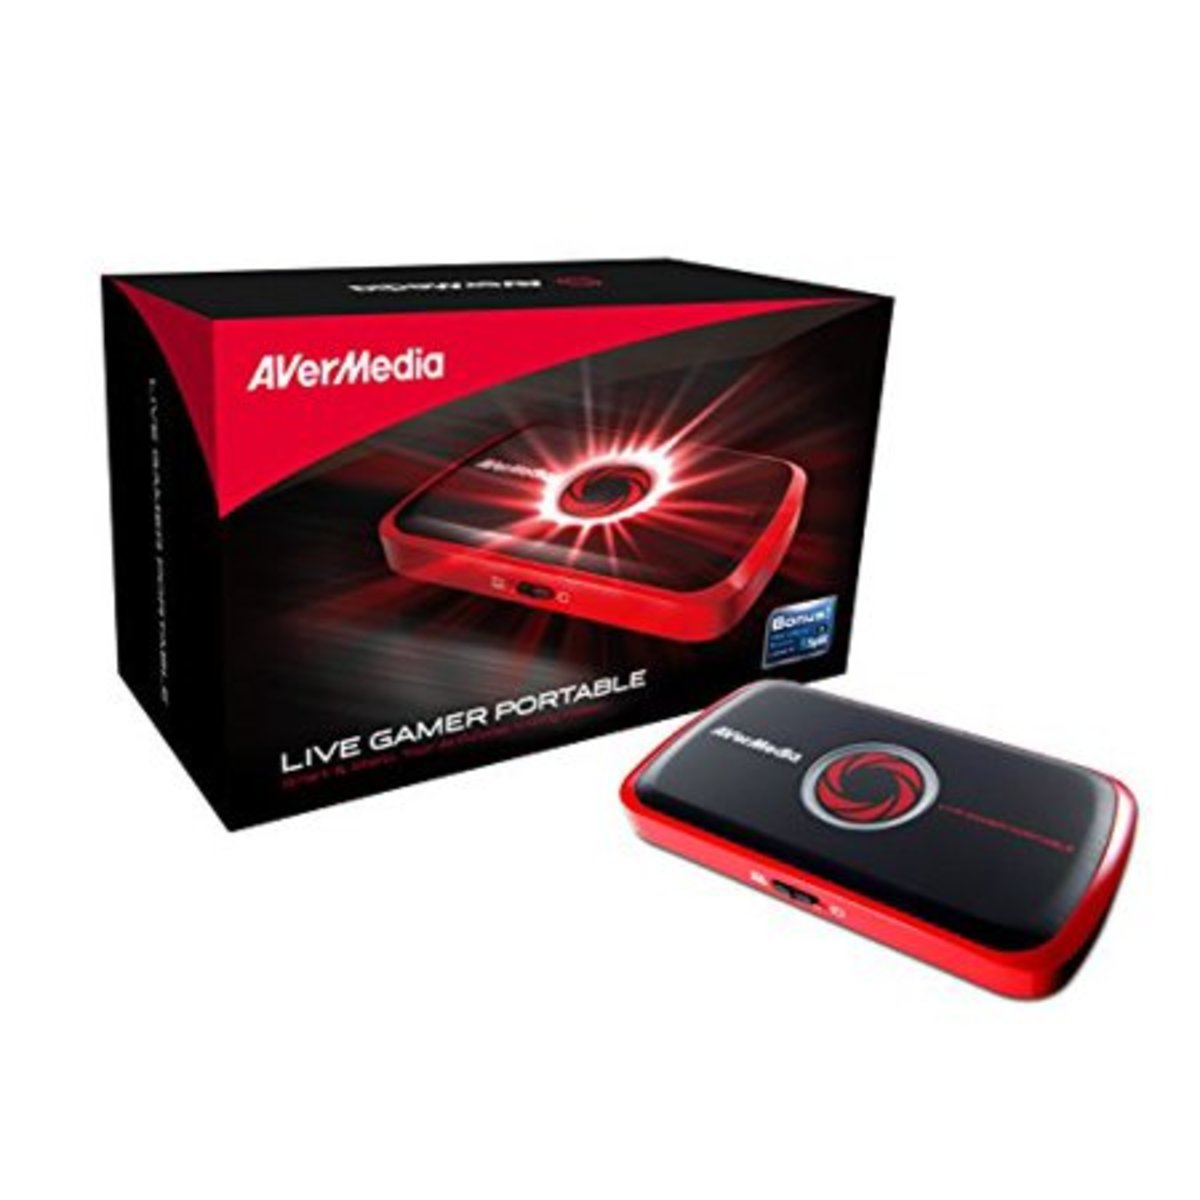 The Avvermedia Live Gamer Portable